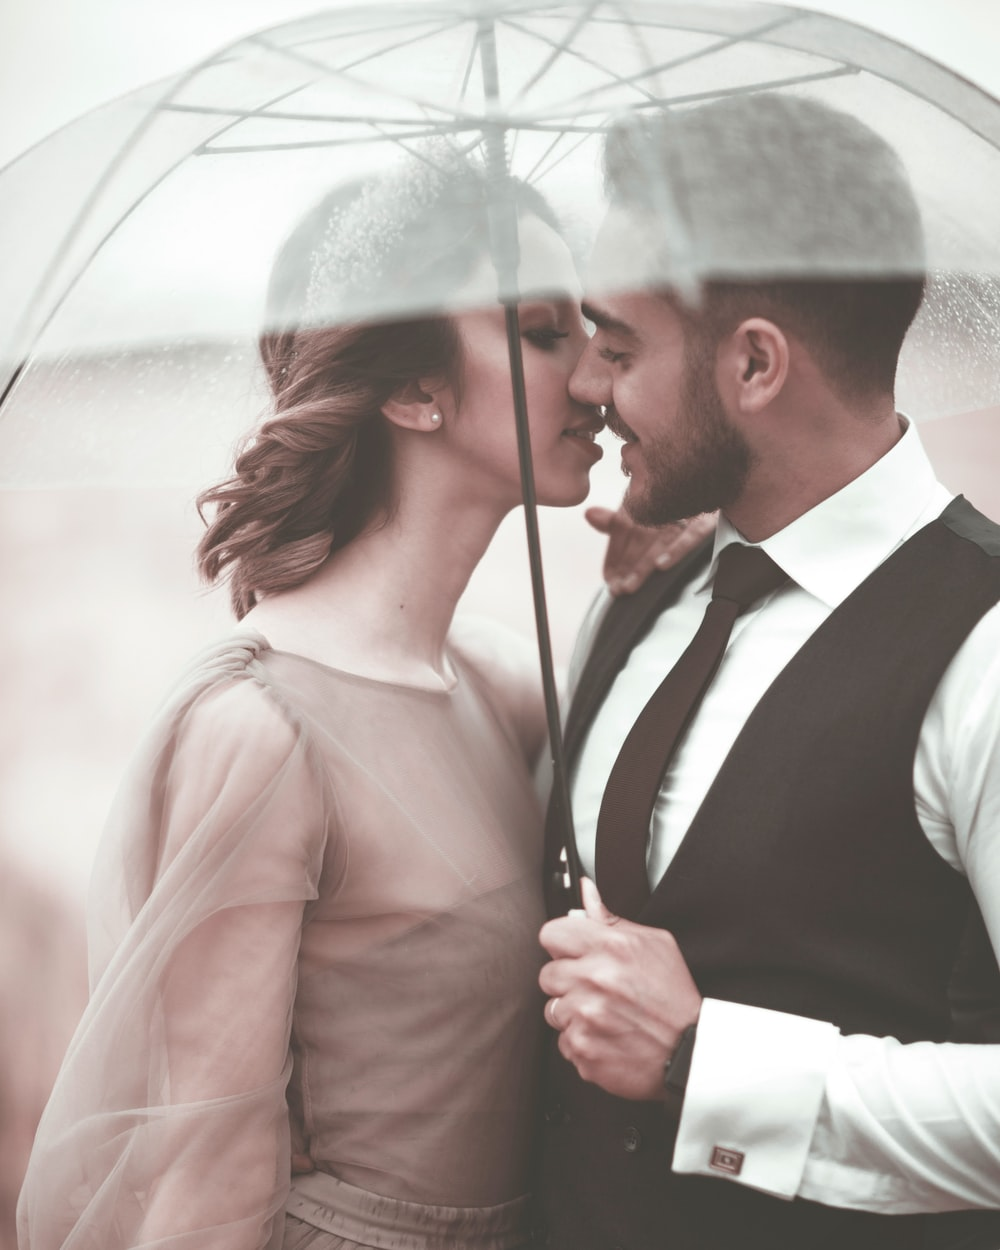 woman and man about to kiss under umbrella